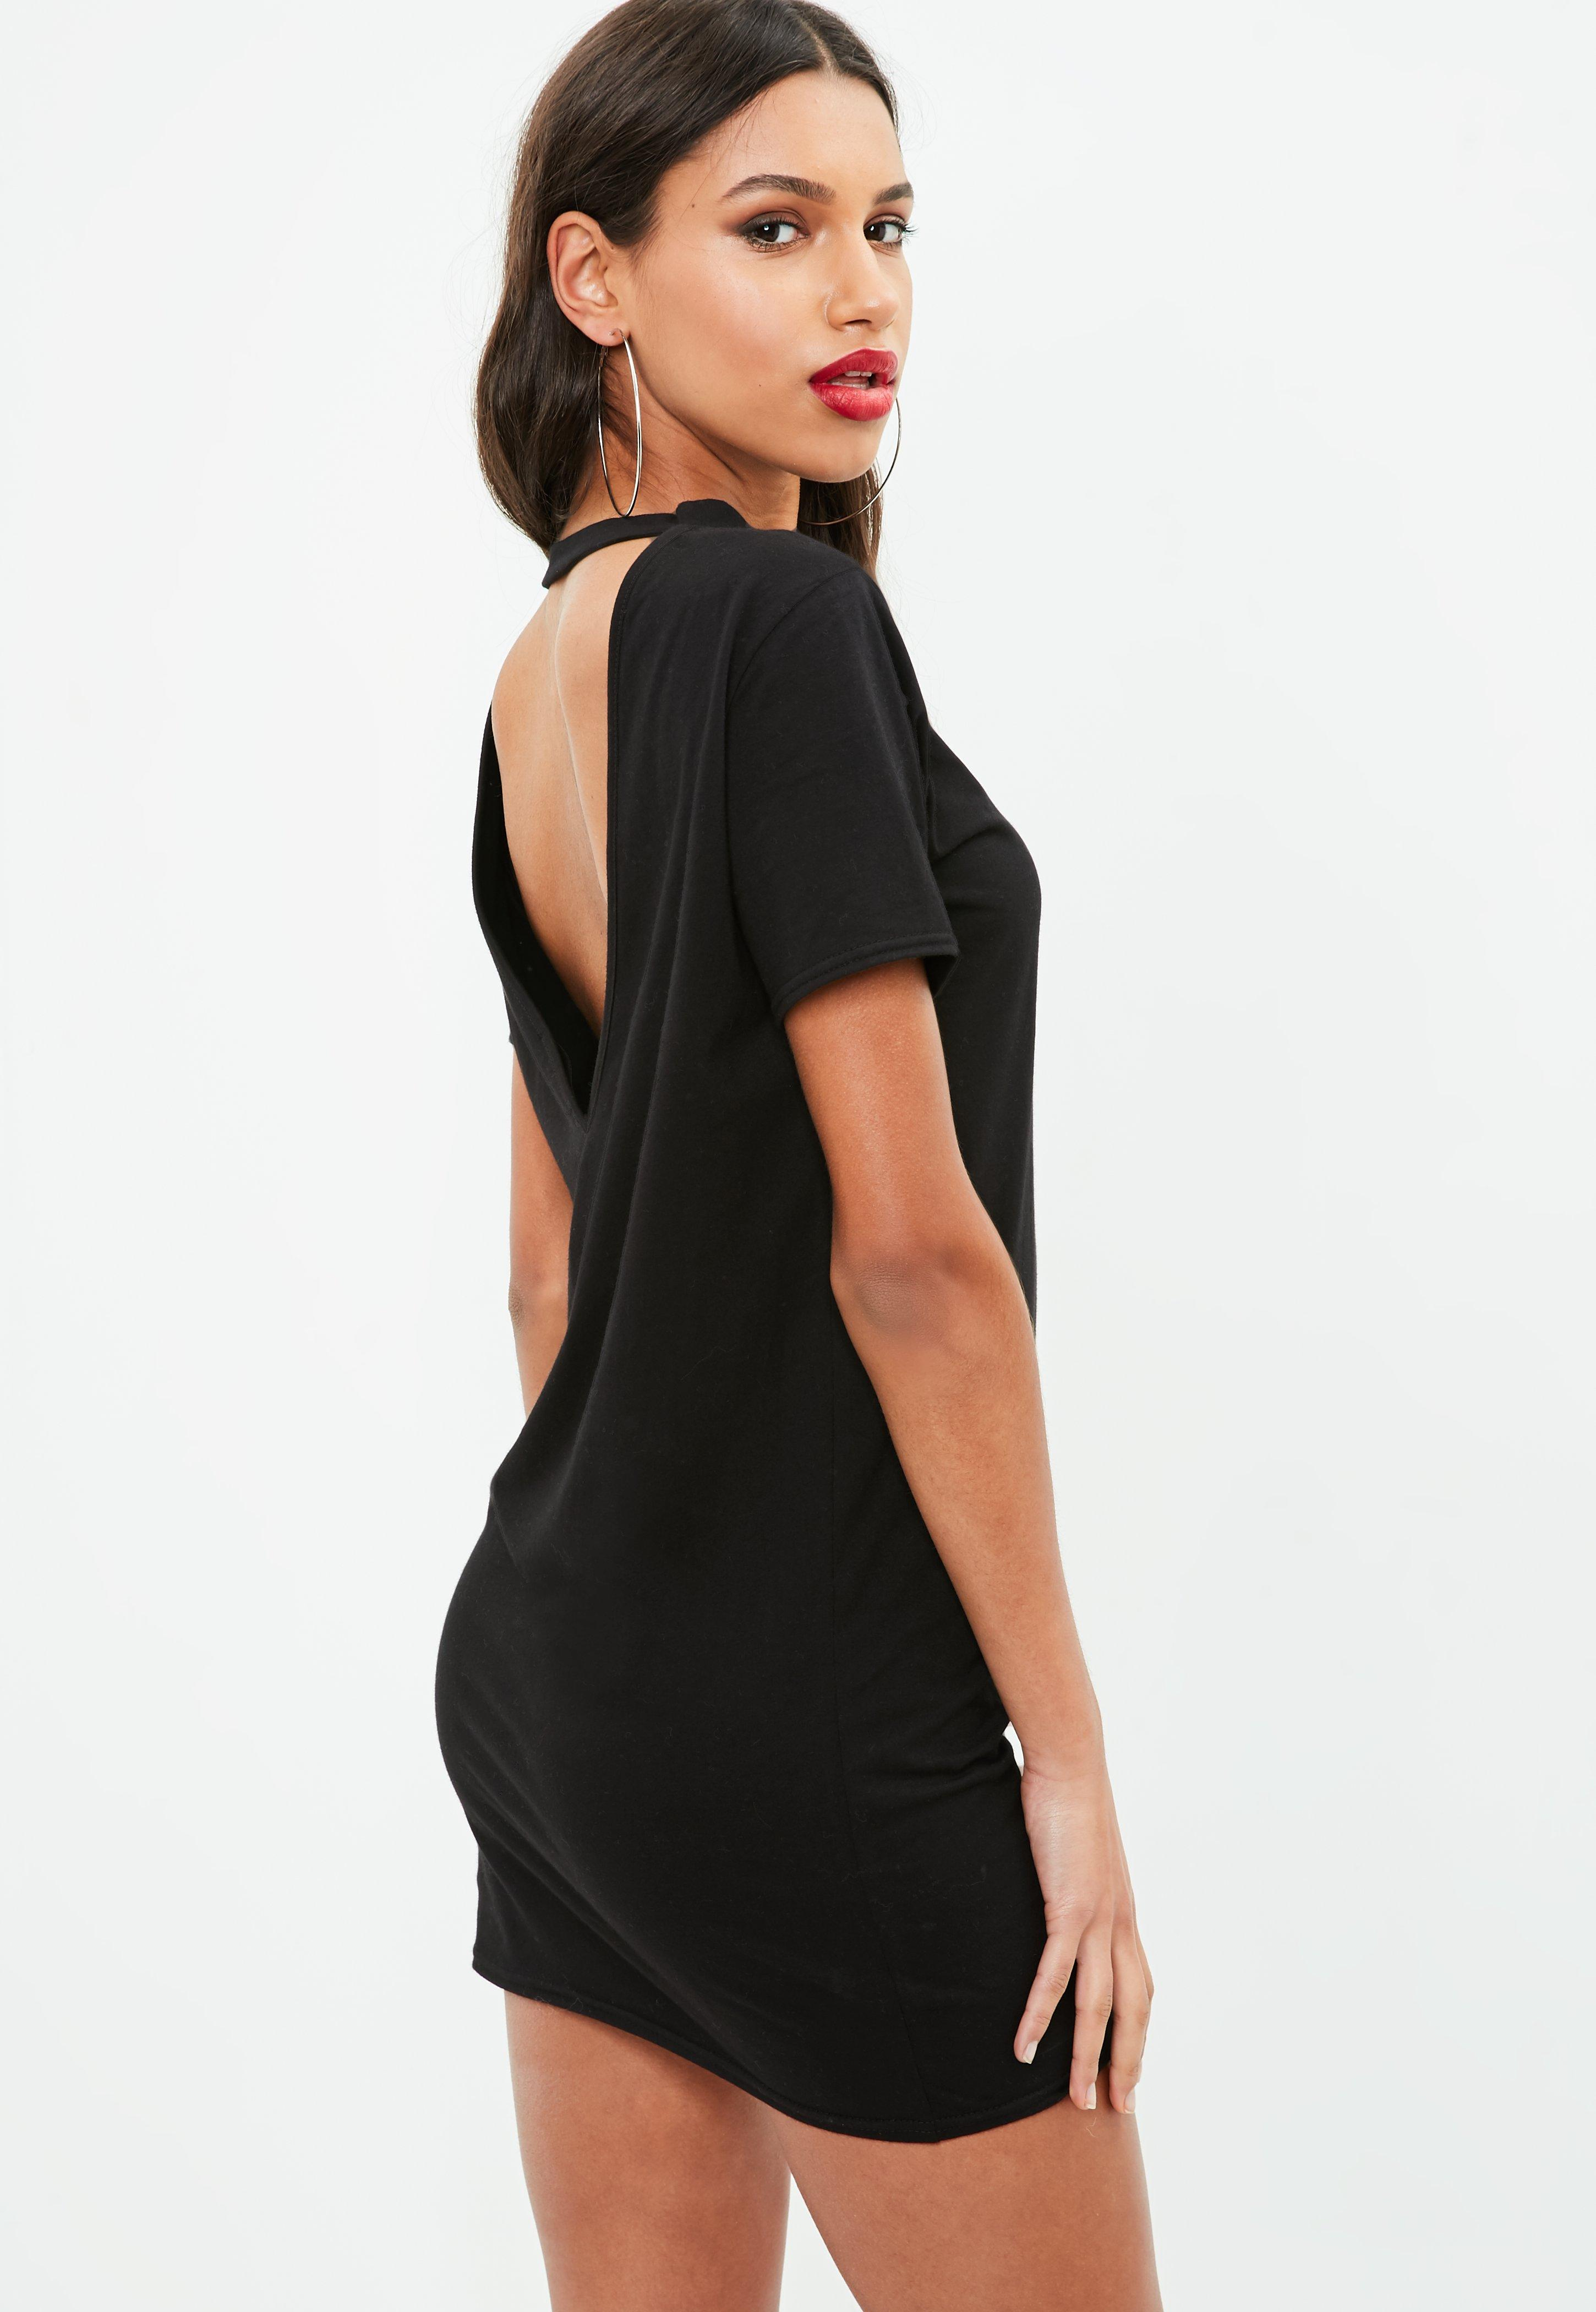 Black dress long in the back